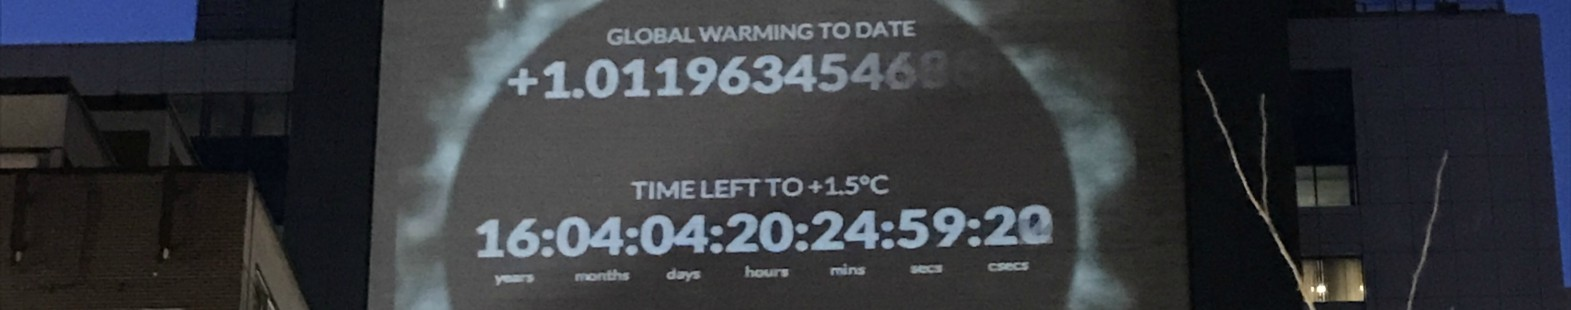 Image shows the climate clock projected on to the side of a building